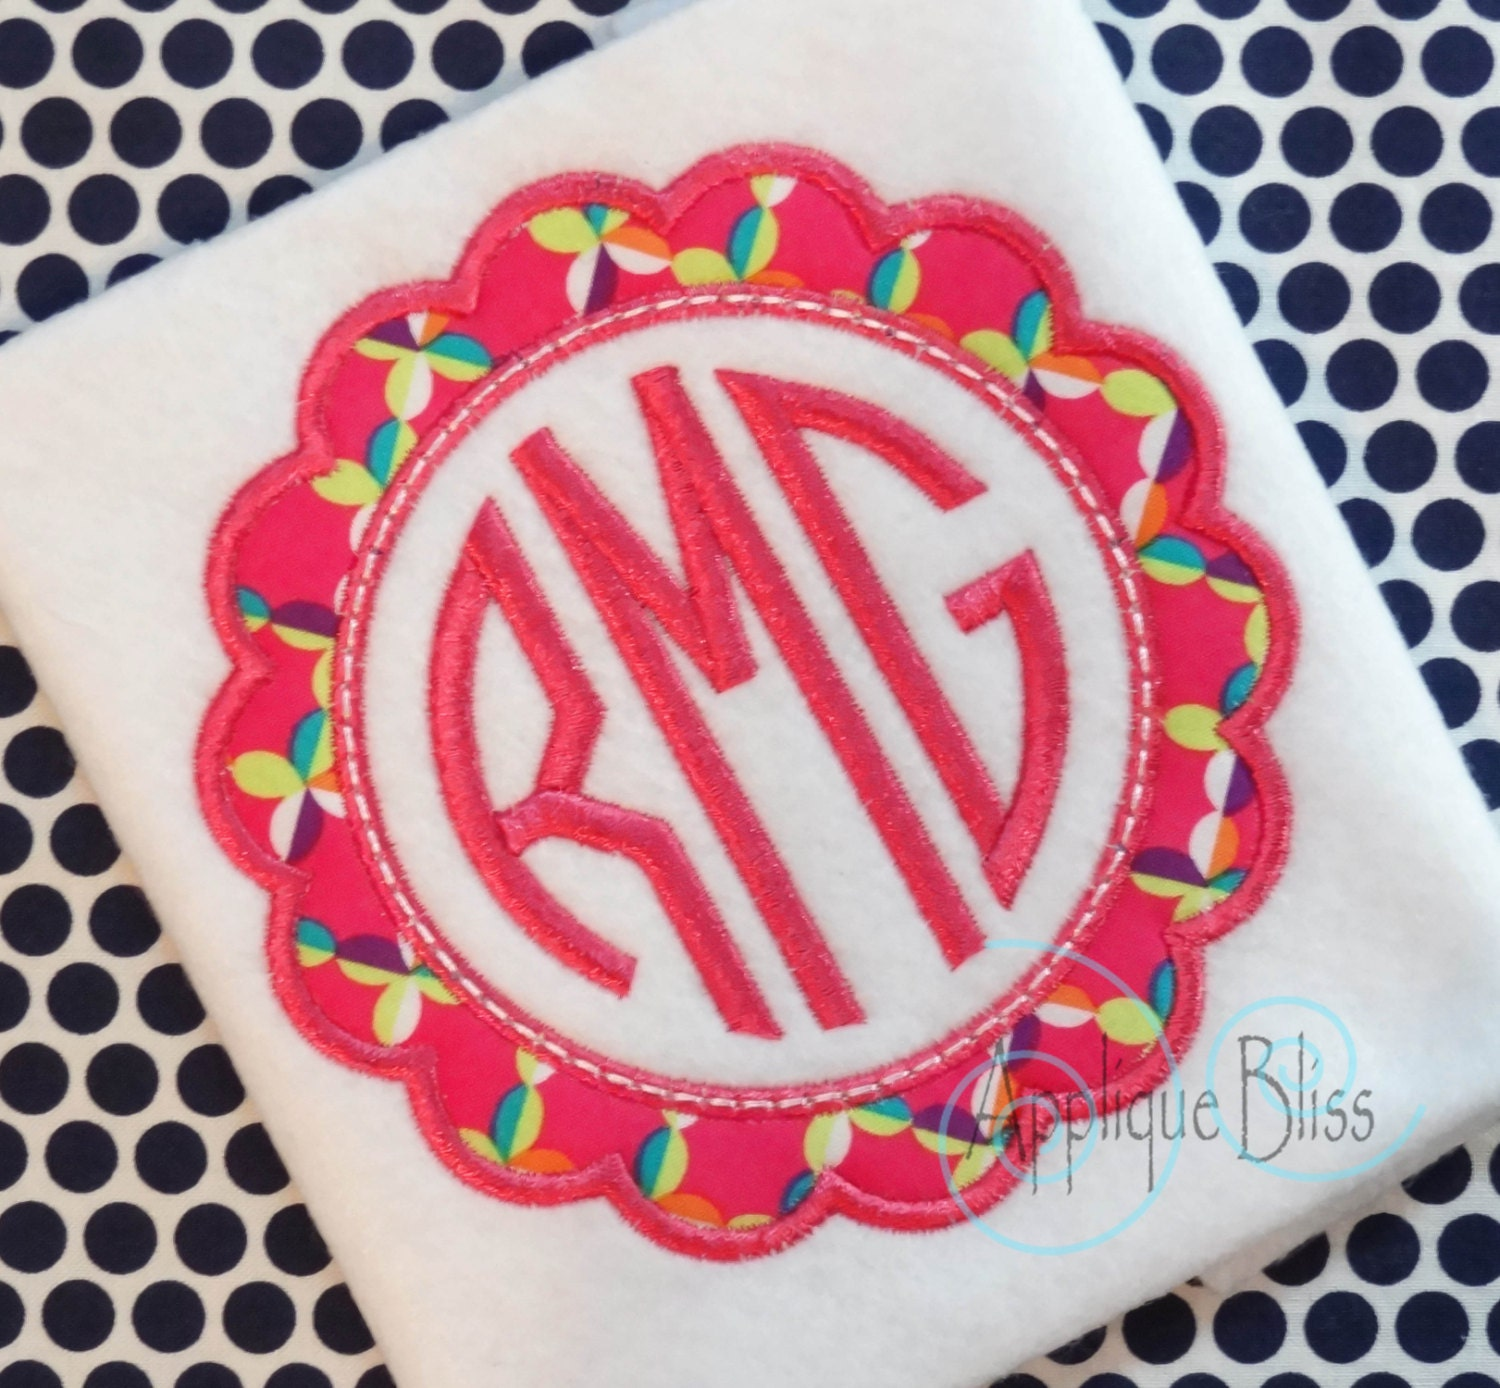 scalloped applique frame digital design cirle monogram